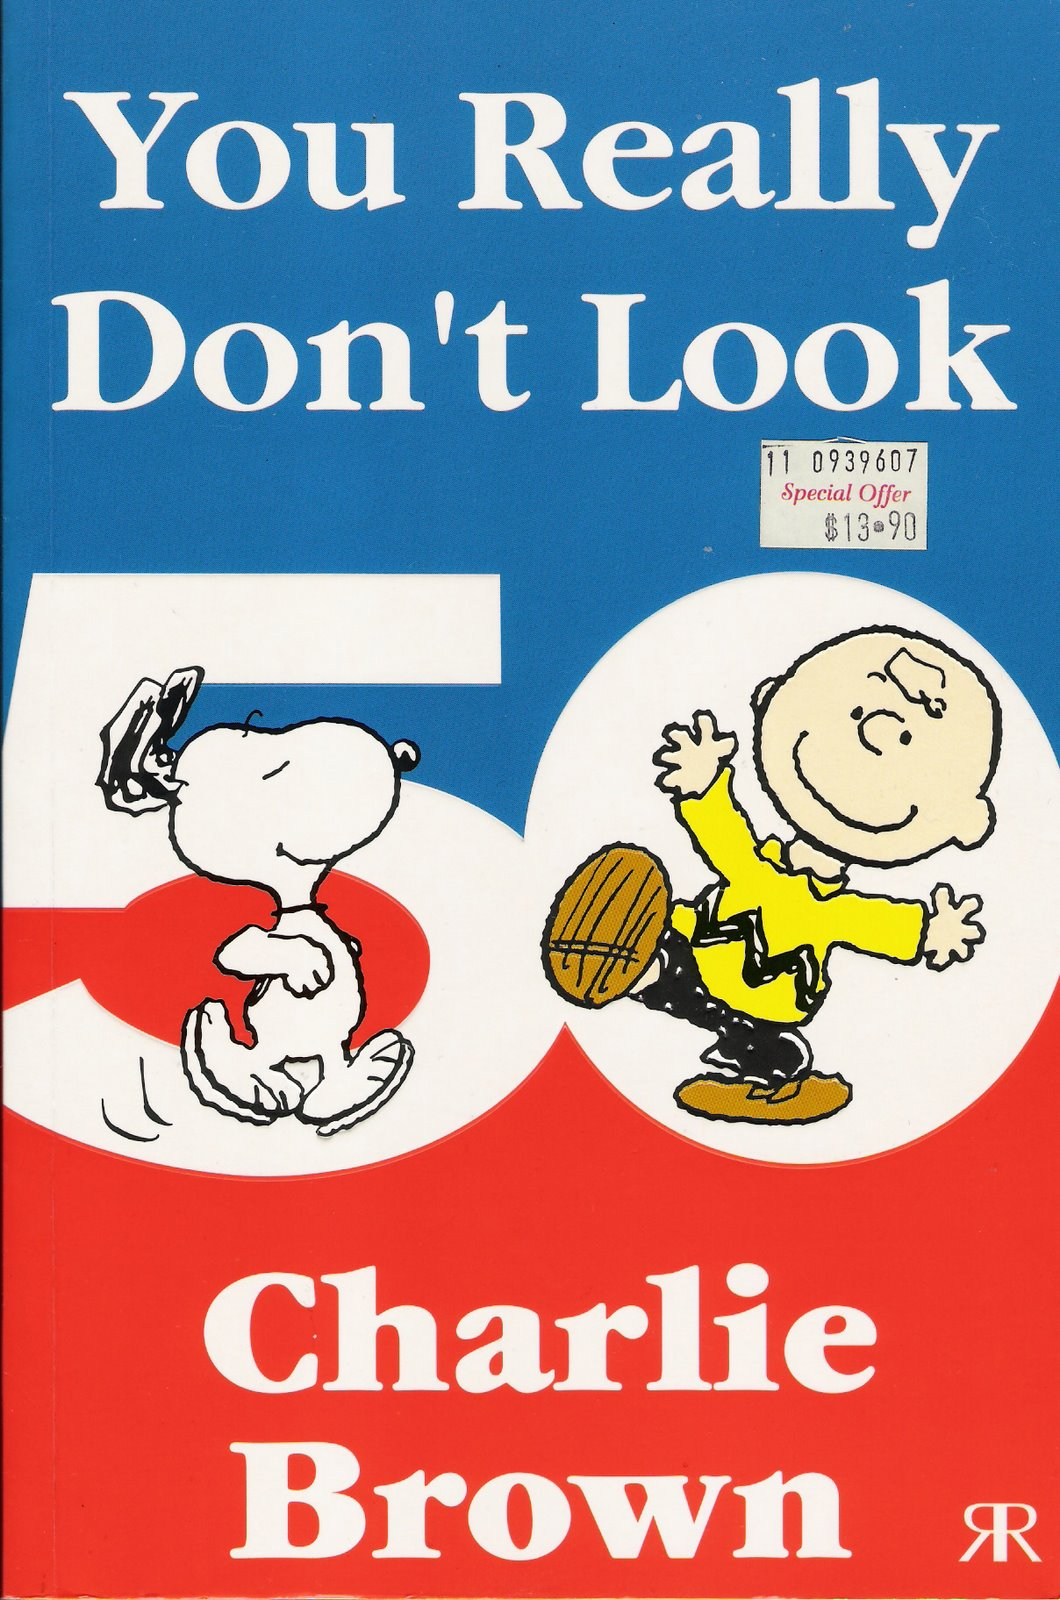 You Really Don't Look 57 Charlie Brown